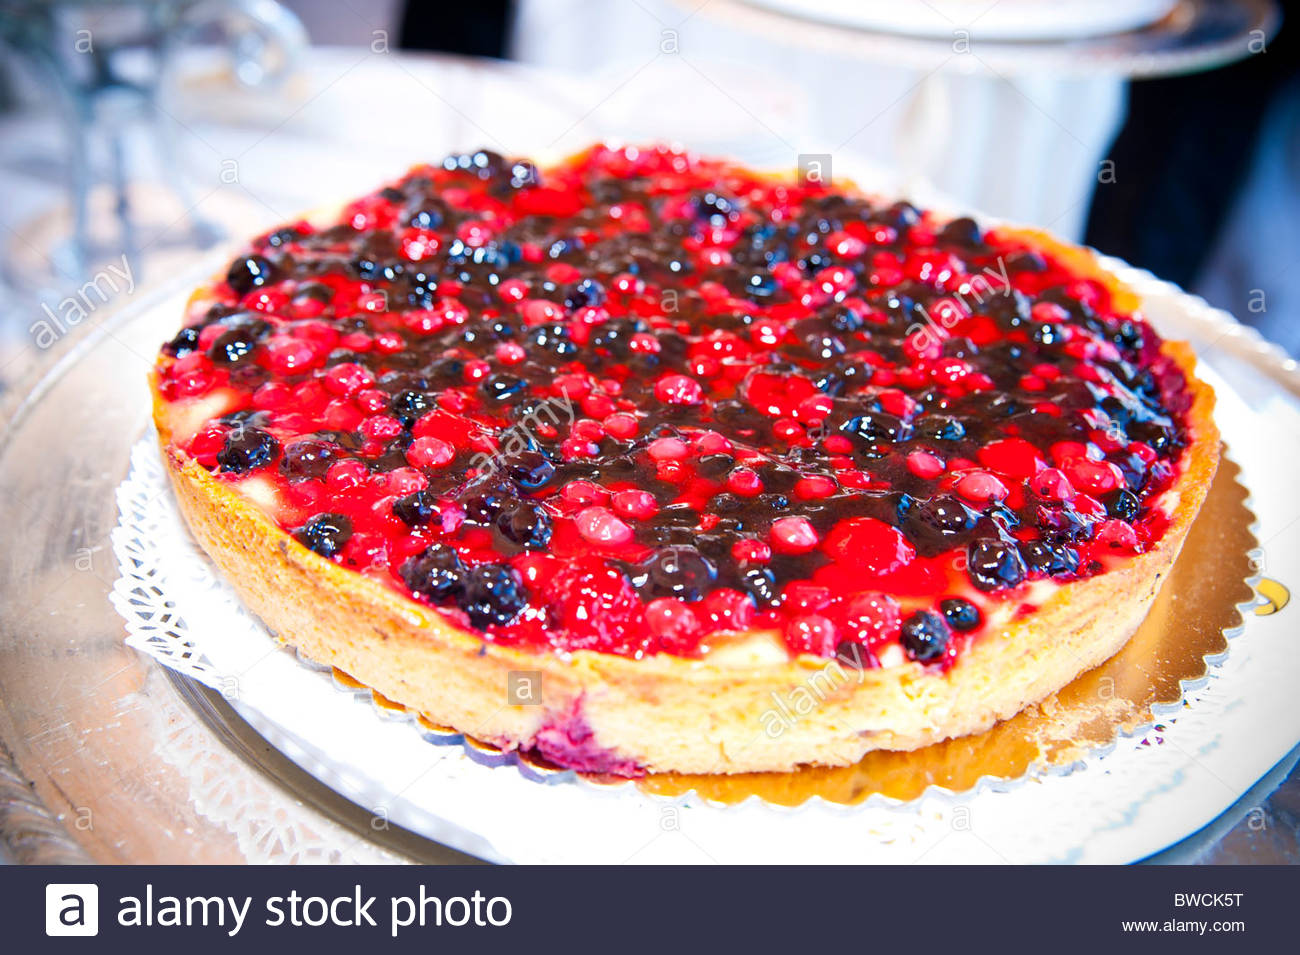 Blueberry and raspberry cake - Stock Image